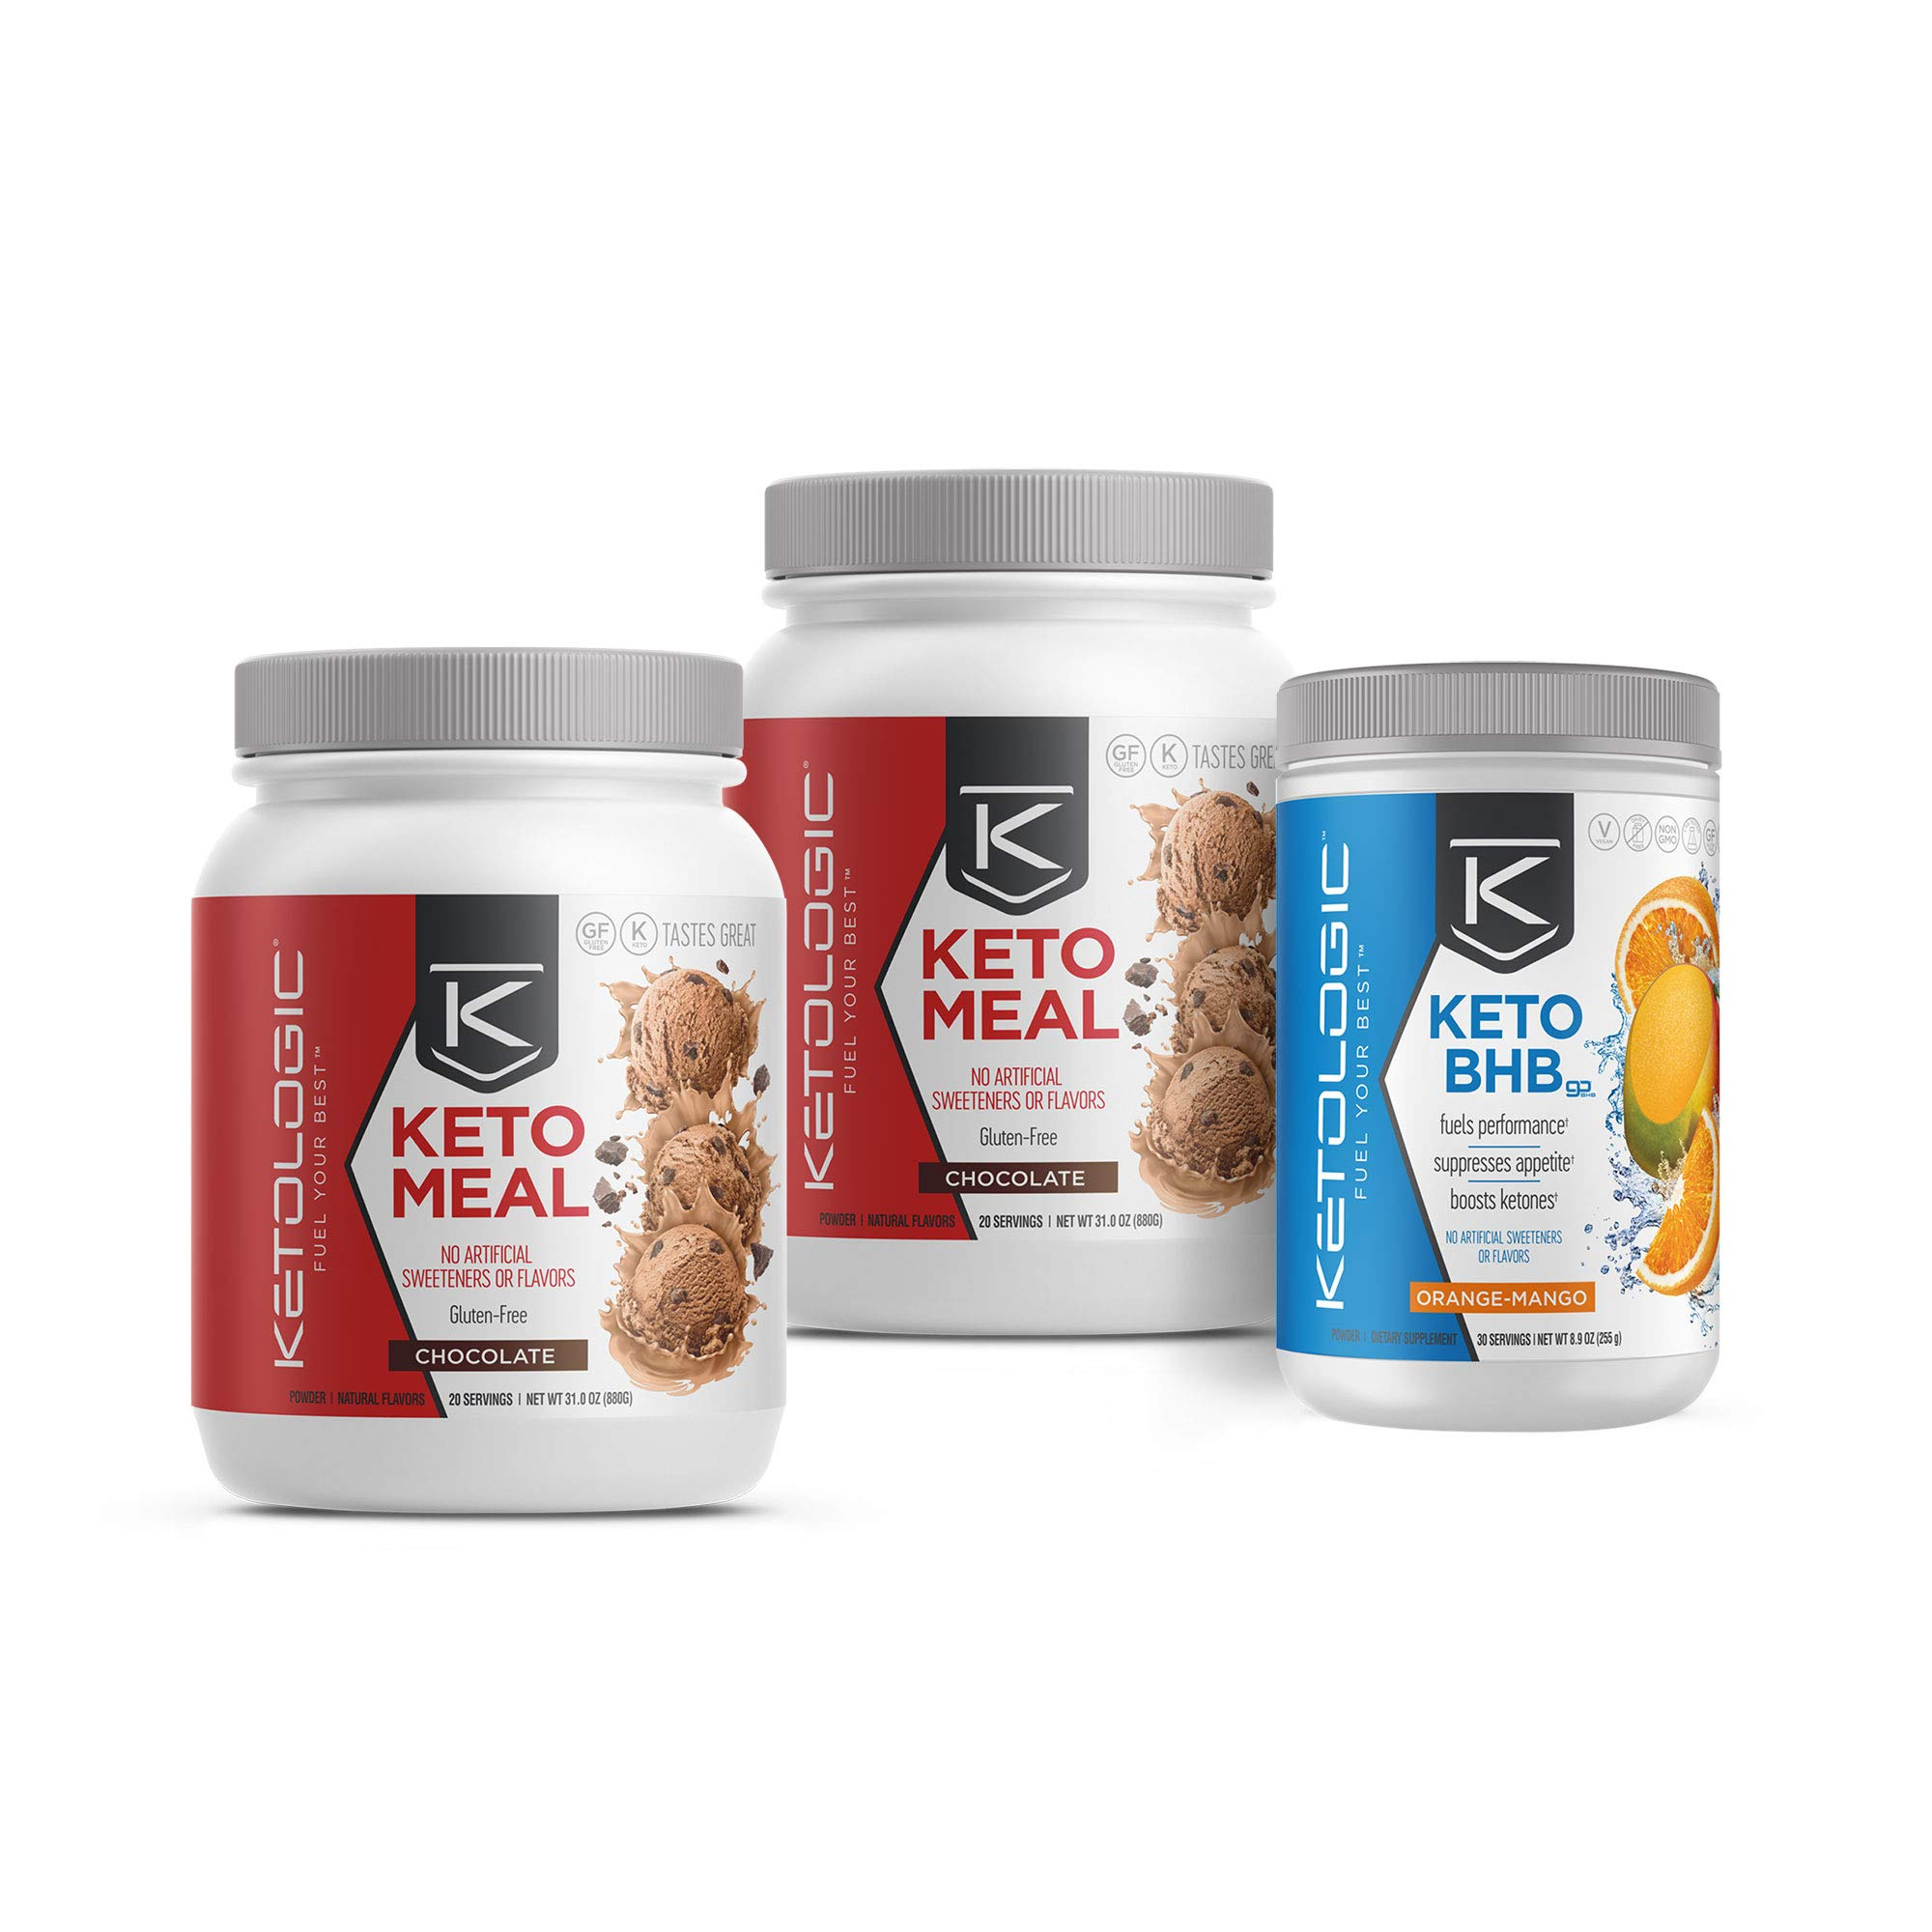 KetoLogic Keto 30 – 30-Day Bundle – Keto Diet Plan/Fast Results/Increases Energy/Low Carb – Chocolate Meal Replacement MCT Shake and Orange-Mango BHB Salts by Ketologic (Image #1)